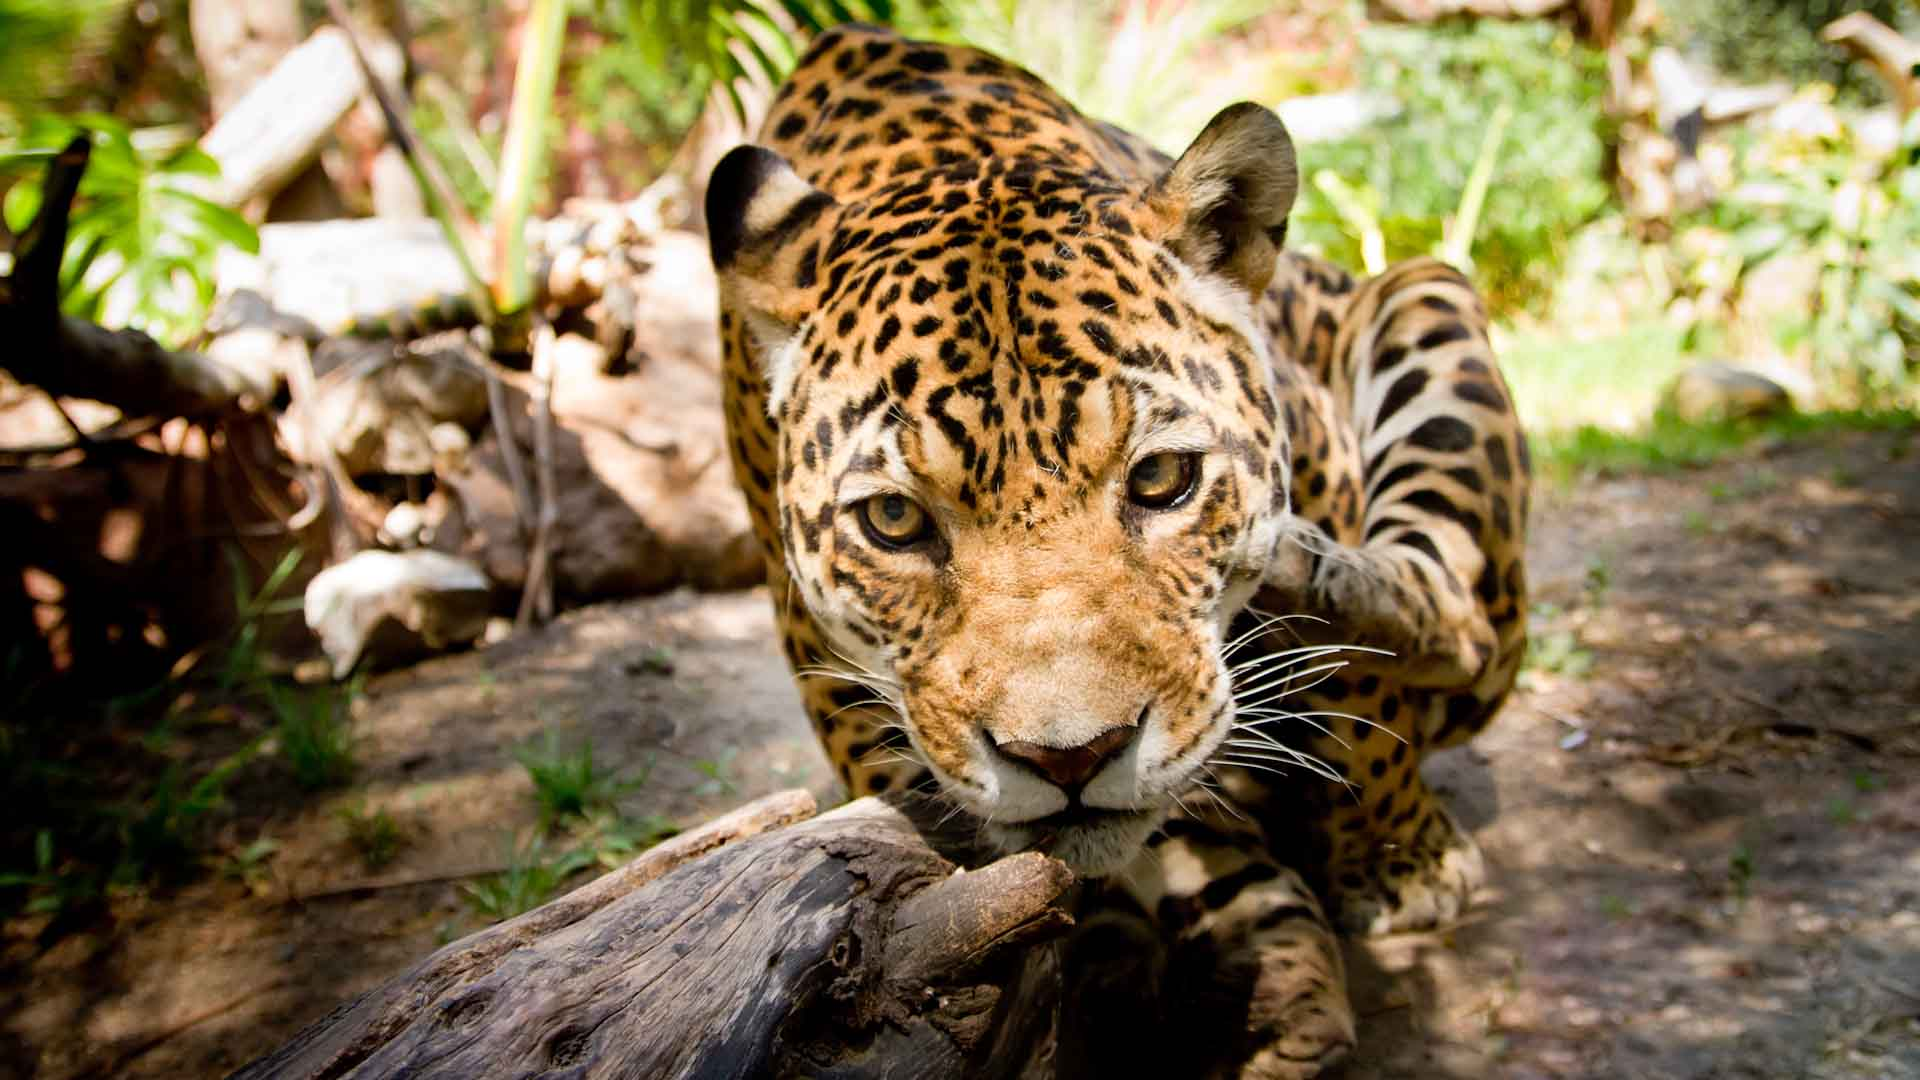 animaux-jaguar-costa-rica-decouverte